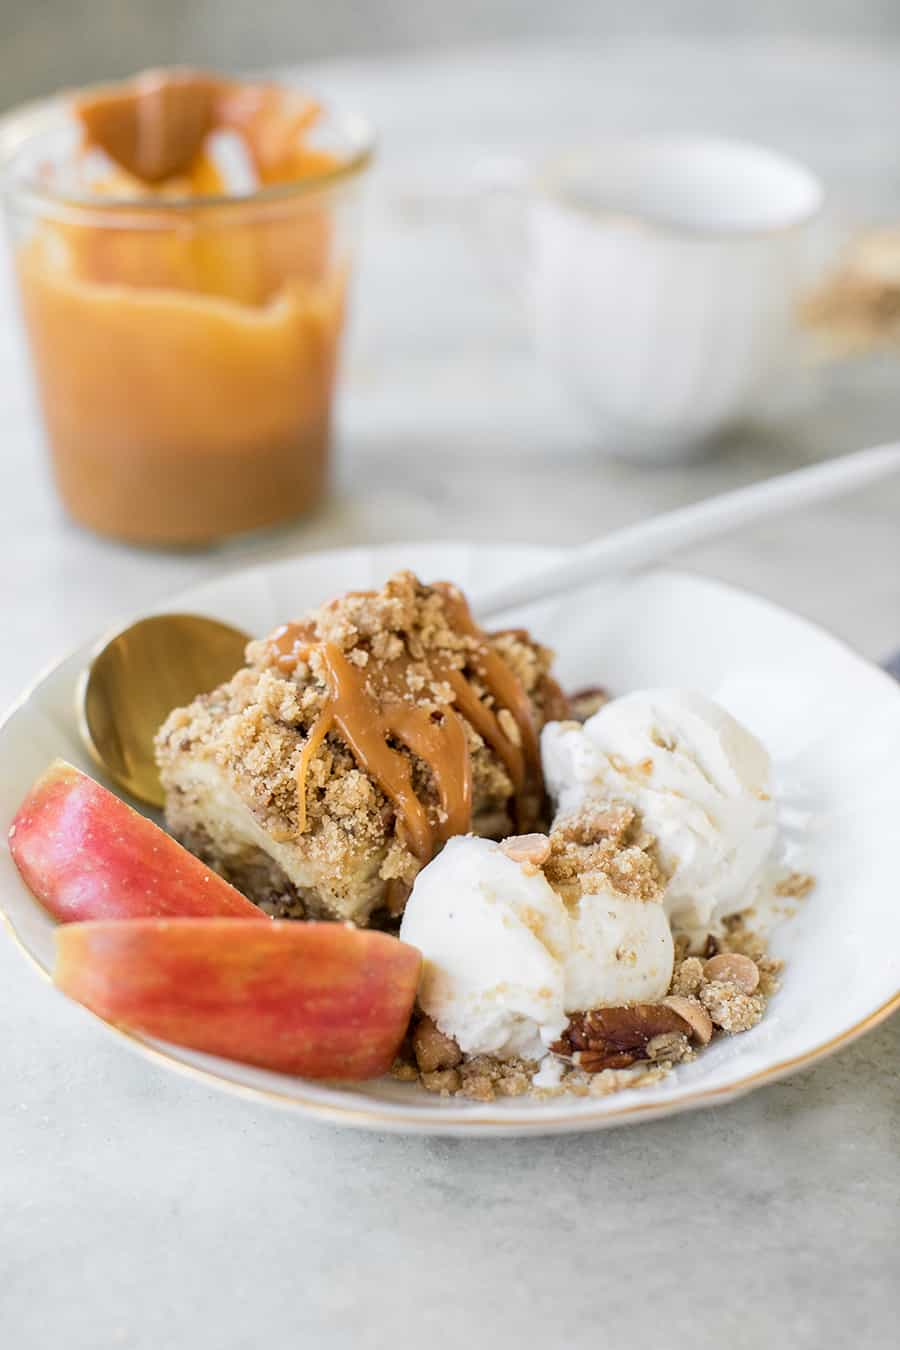 Caramel Apple Crumble Bars served with vanilla ice cream and crumble topping